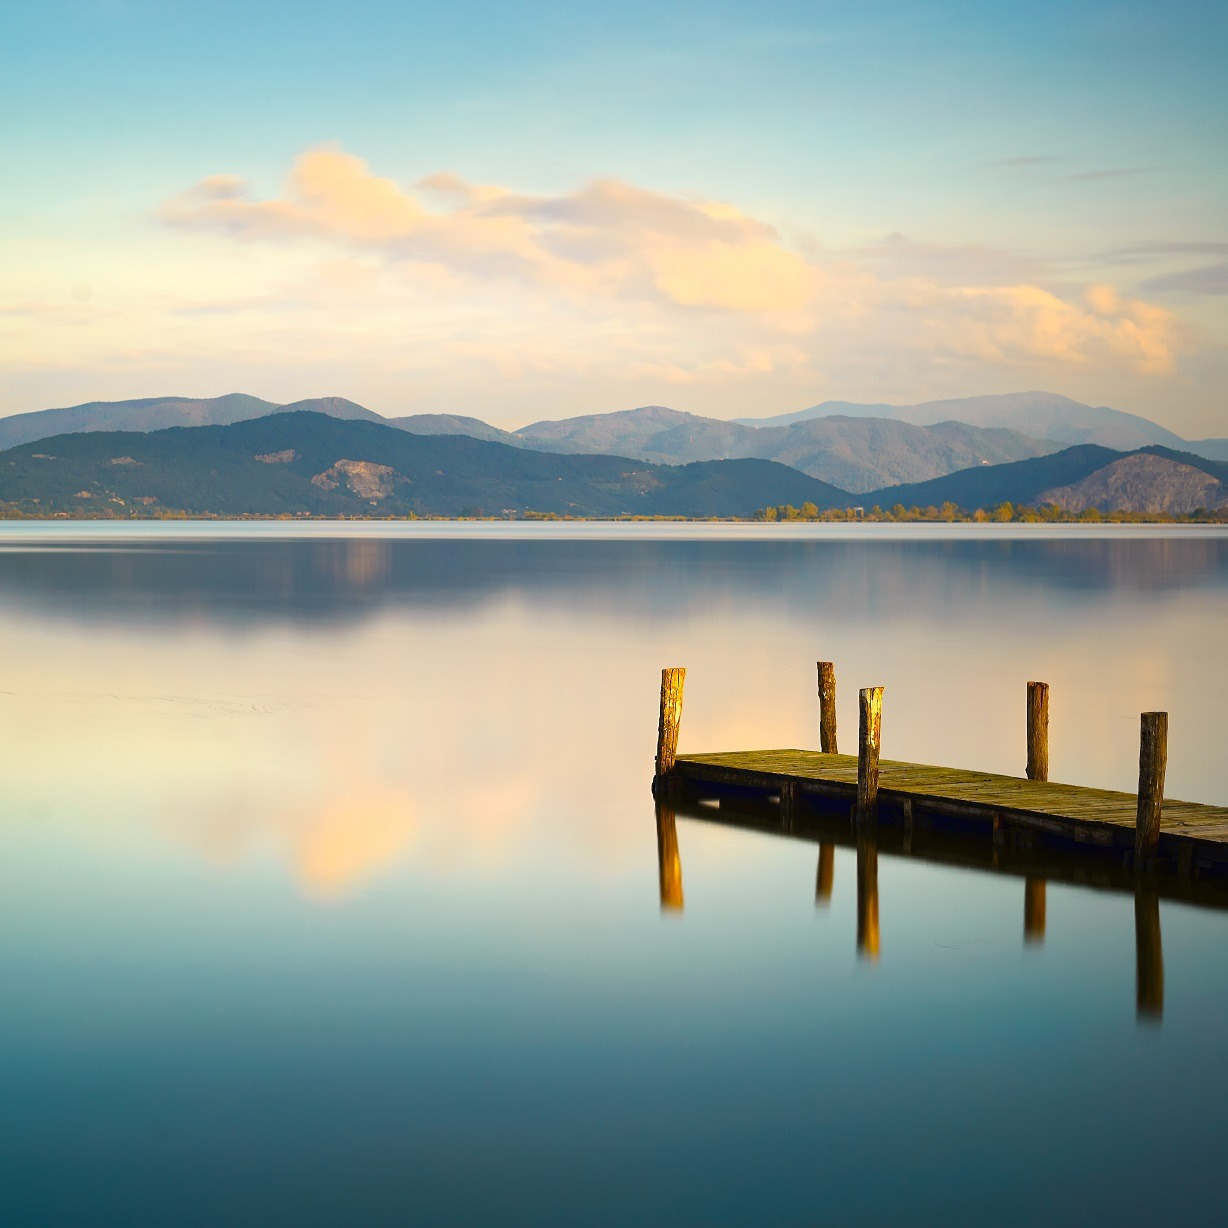 Wooden pier or jetty and on a blue lake sunset and cloudy sky reflection on water.